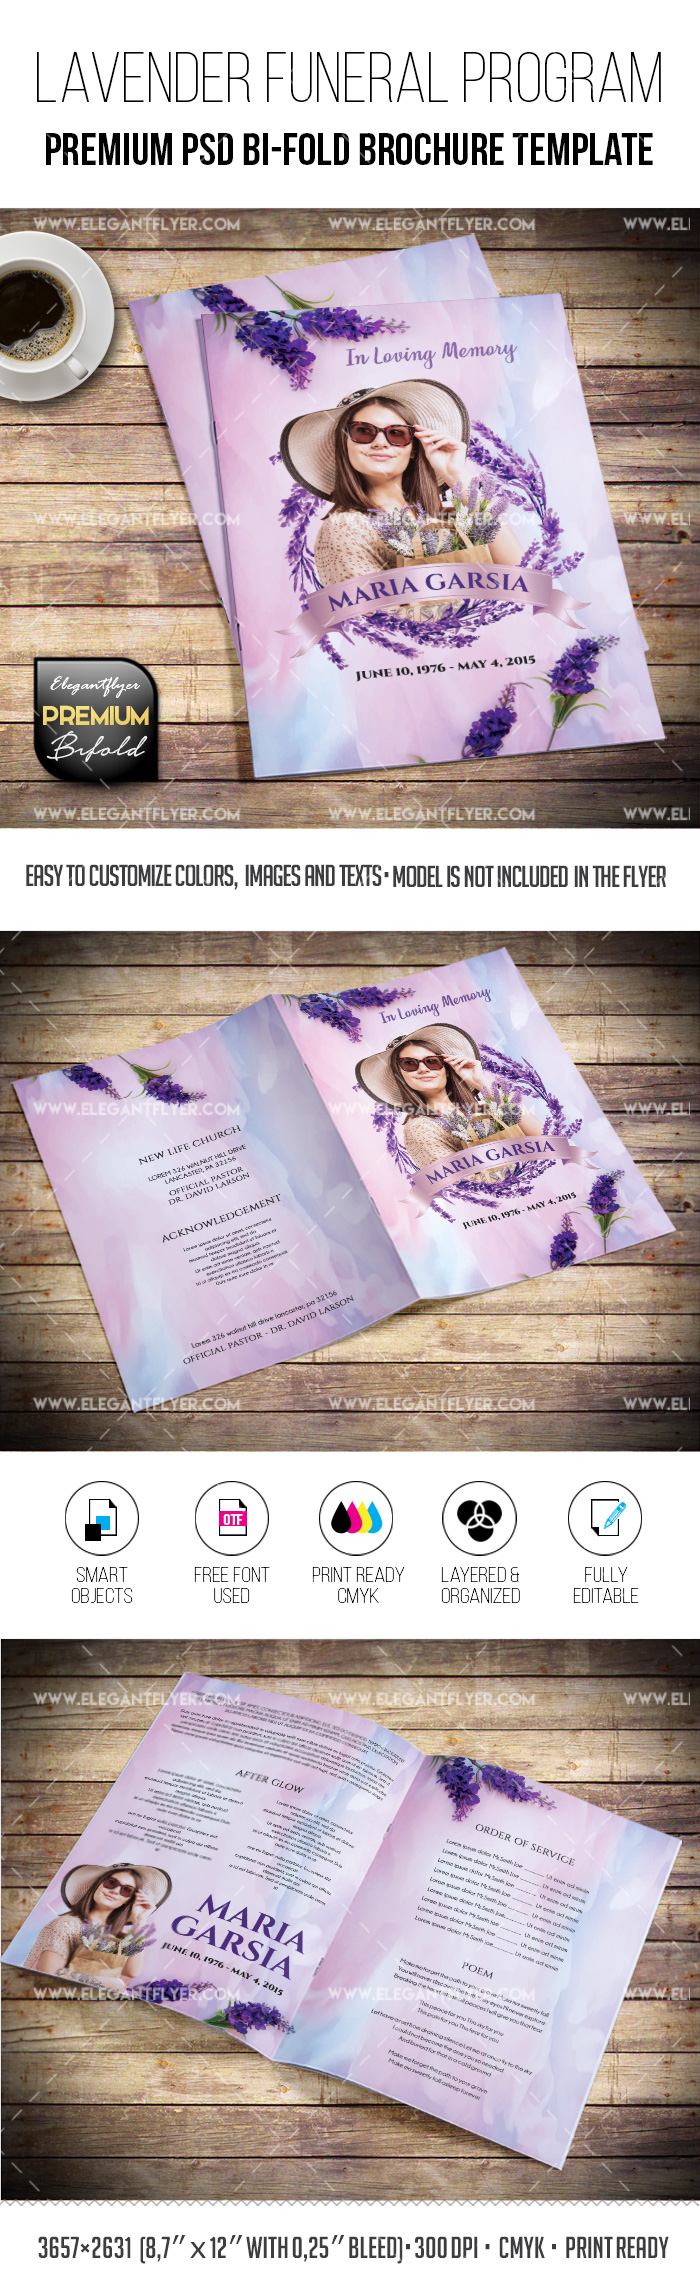 Lavender-colored Funeral Program PSD Template